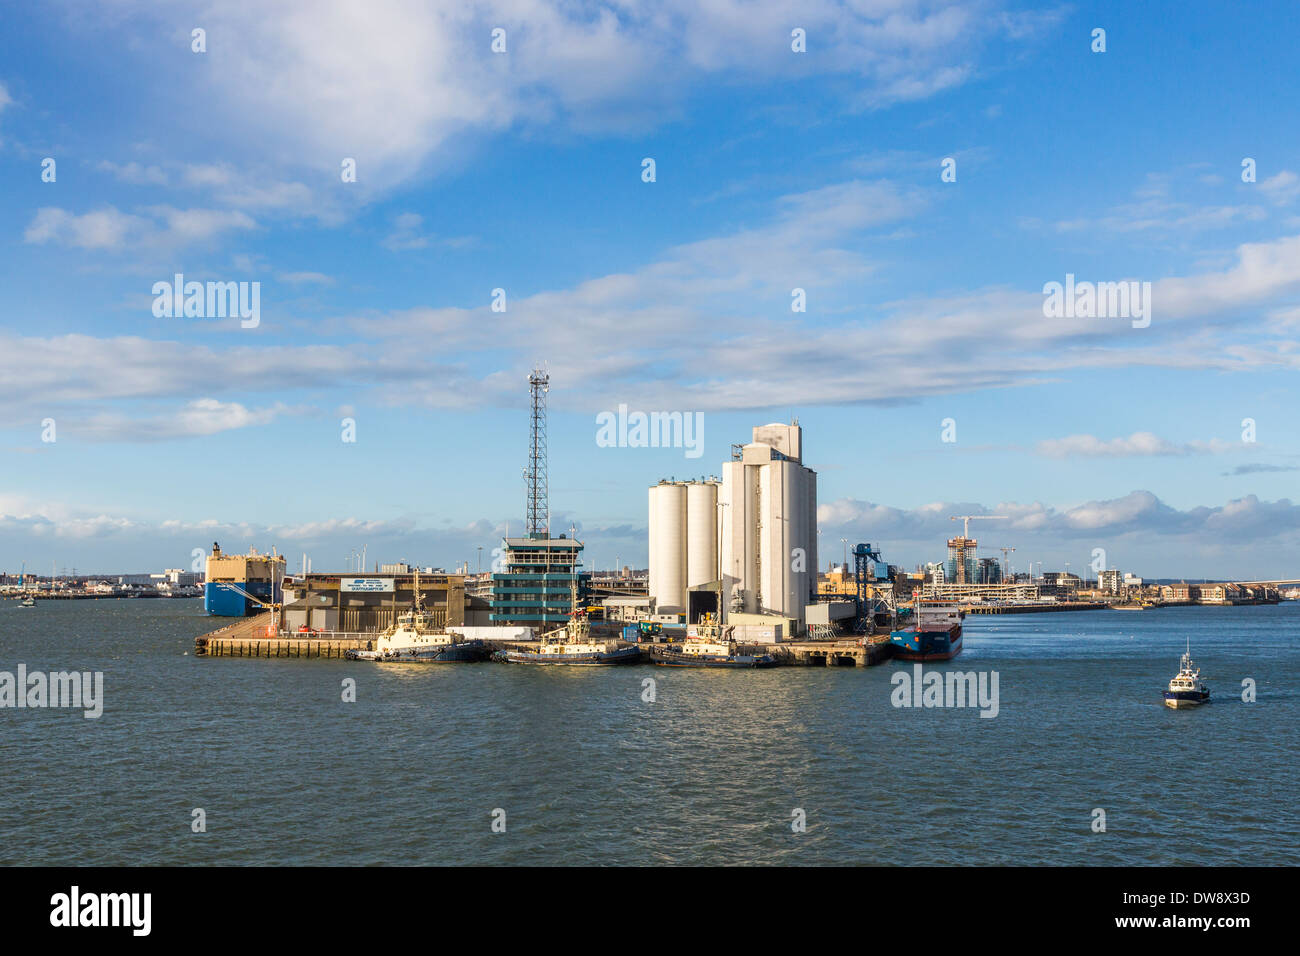 View of Southampton Docks on the Solent, Hampshire, UK with blue sky and clouds on a sunny day - Stock Image